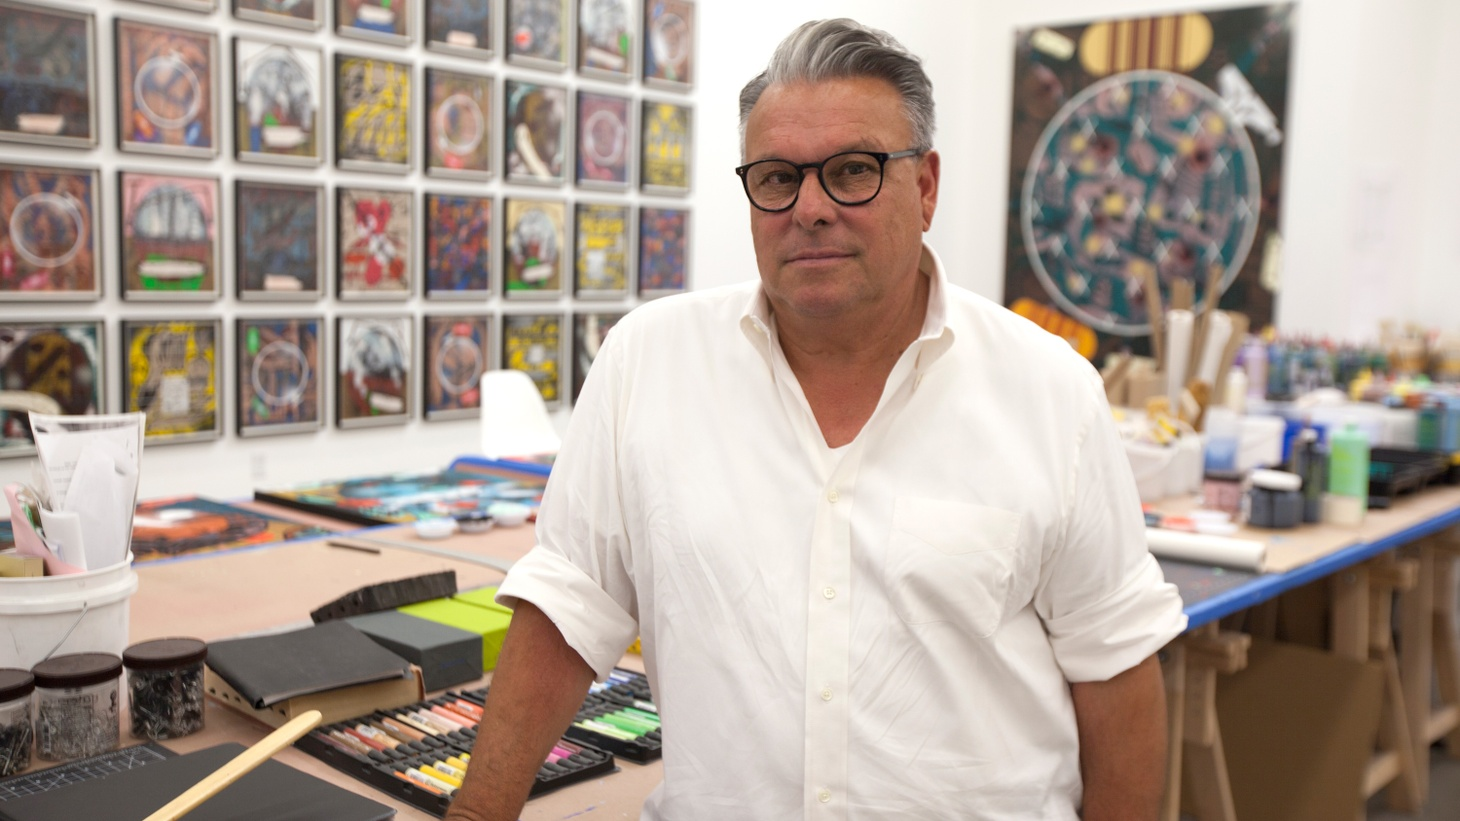 Lari Pittman's work has been shown at every major museum in LA. He's on the board at MOCA and the Hammer. He's been a tenured professor at UCLA since the late '90s.